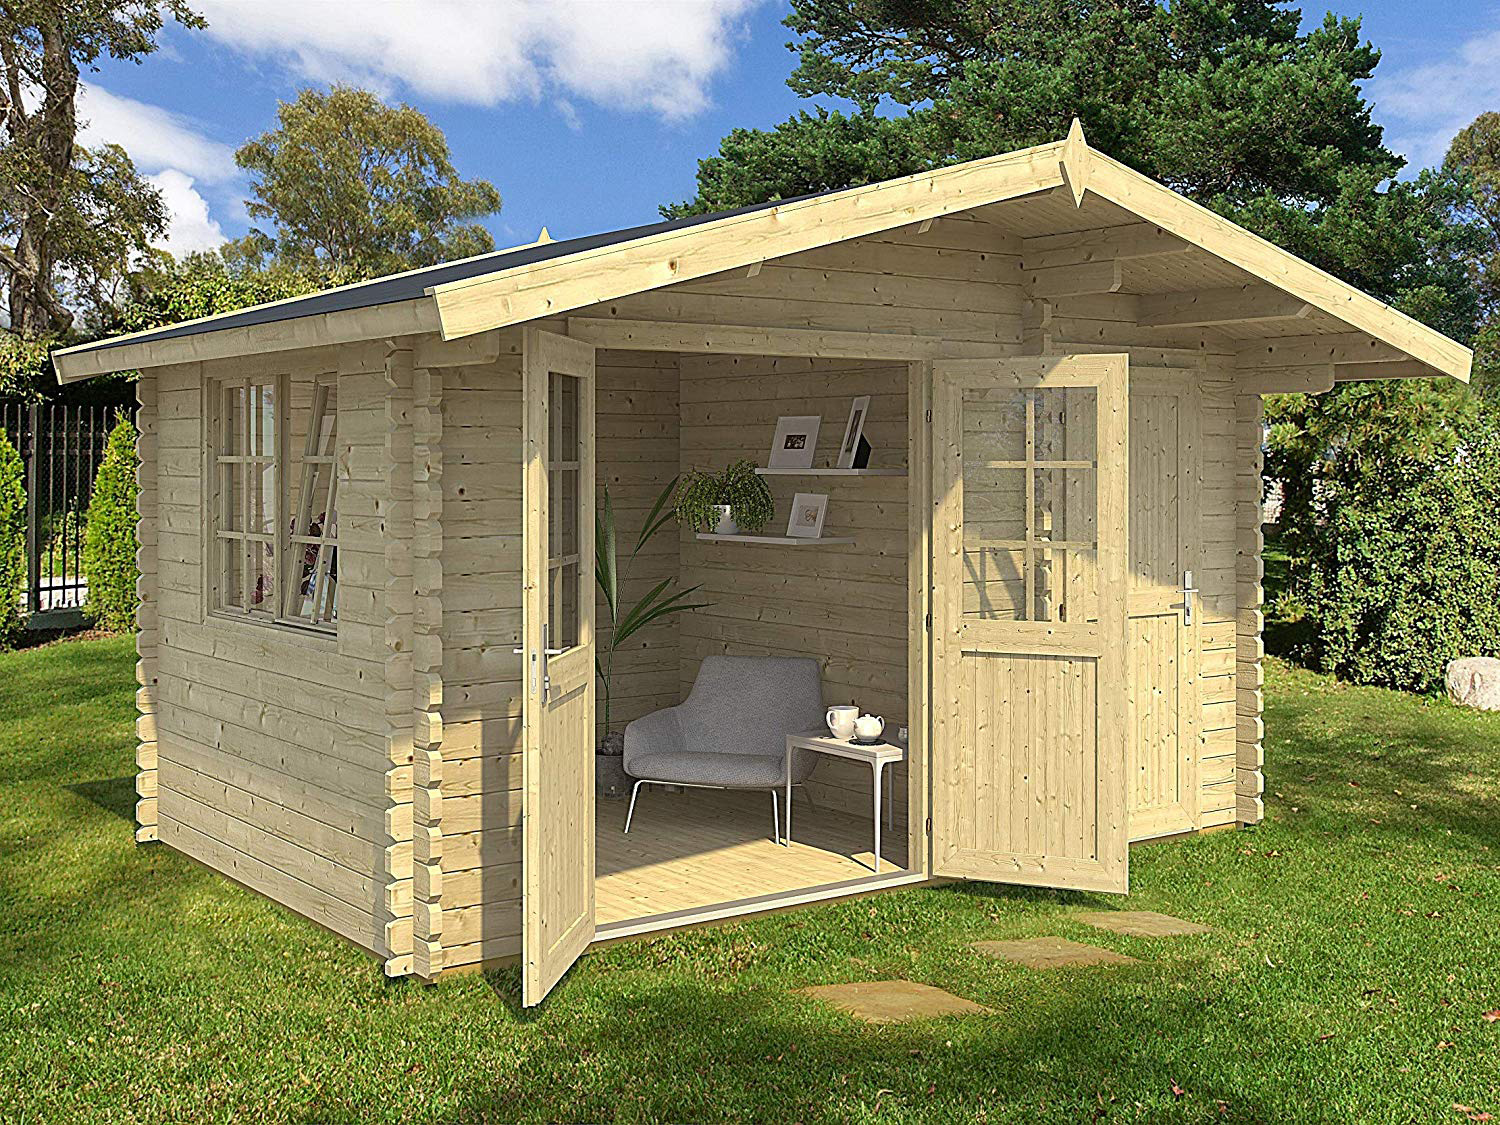 Allwood Estelle 5 157-Square-Foot Cabin Kit, Garden House